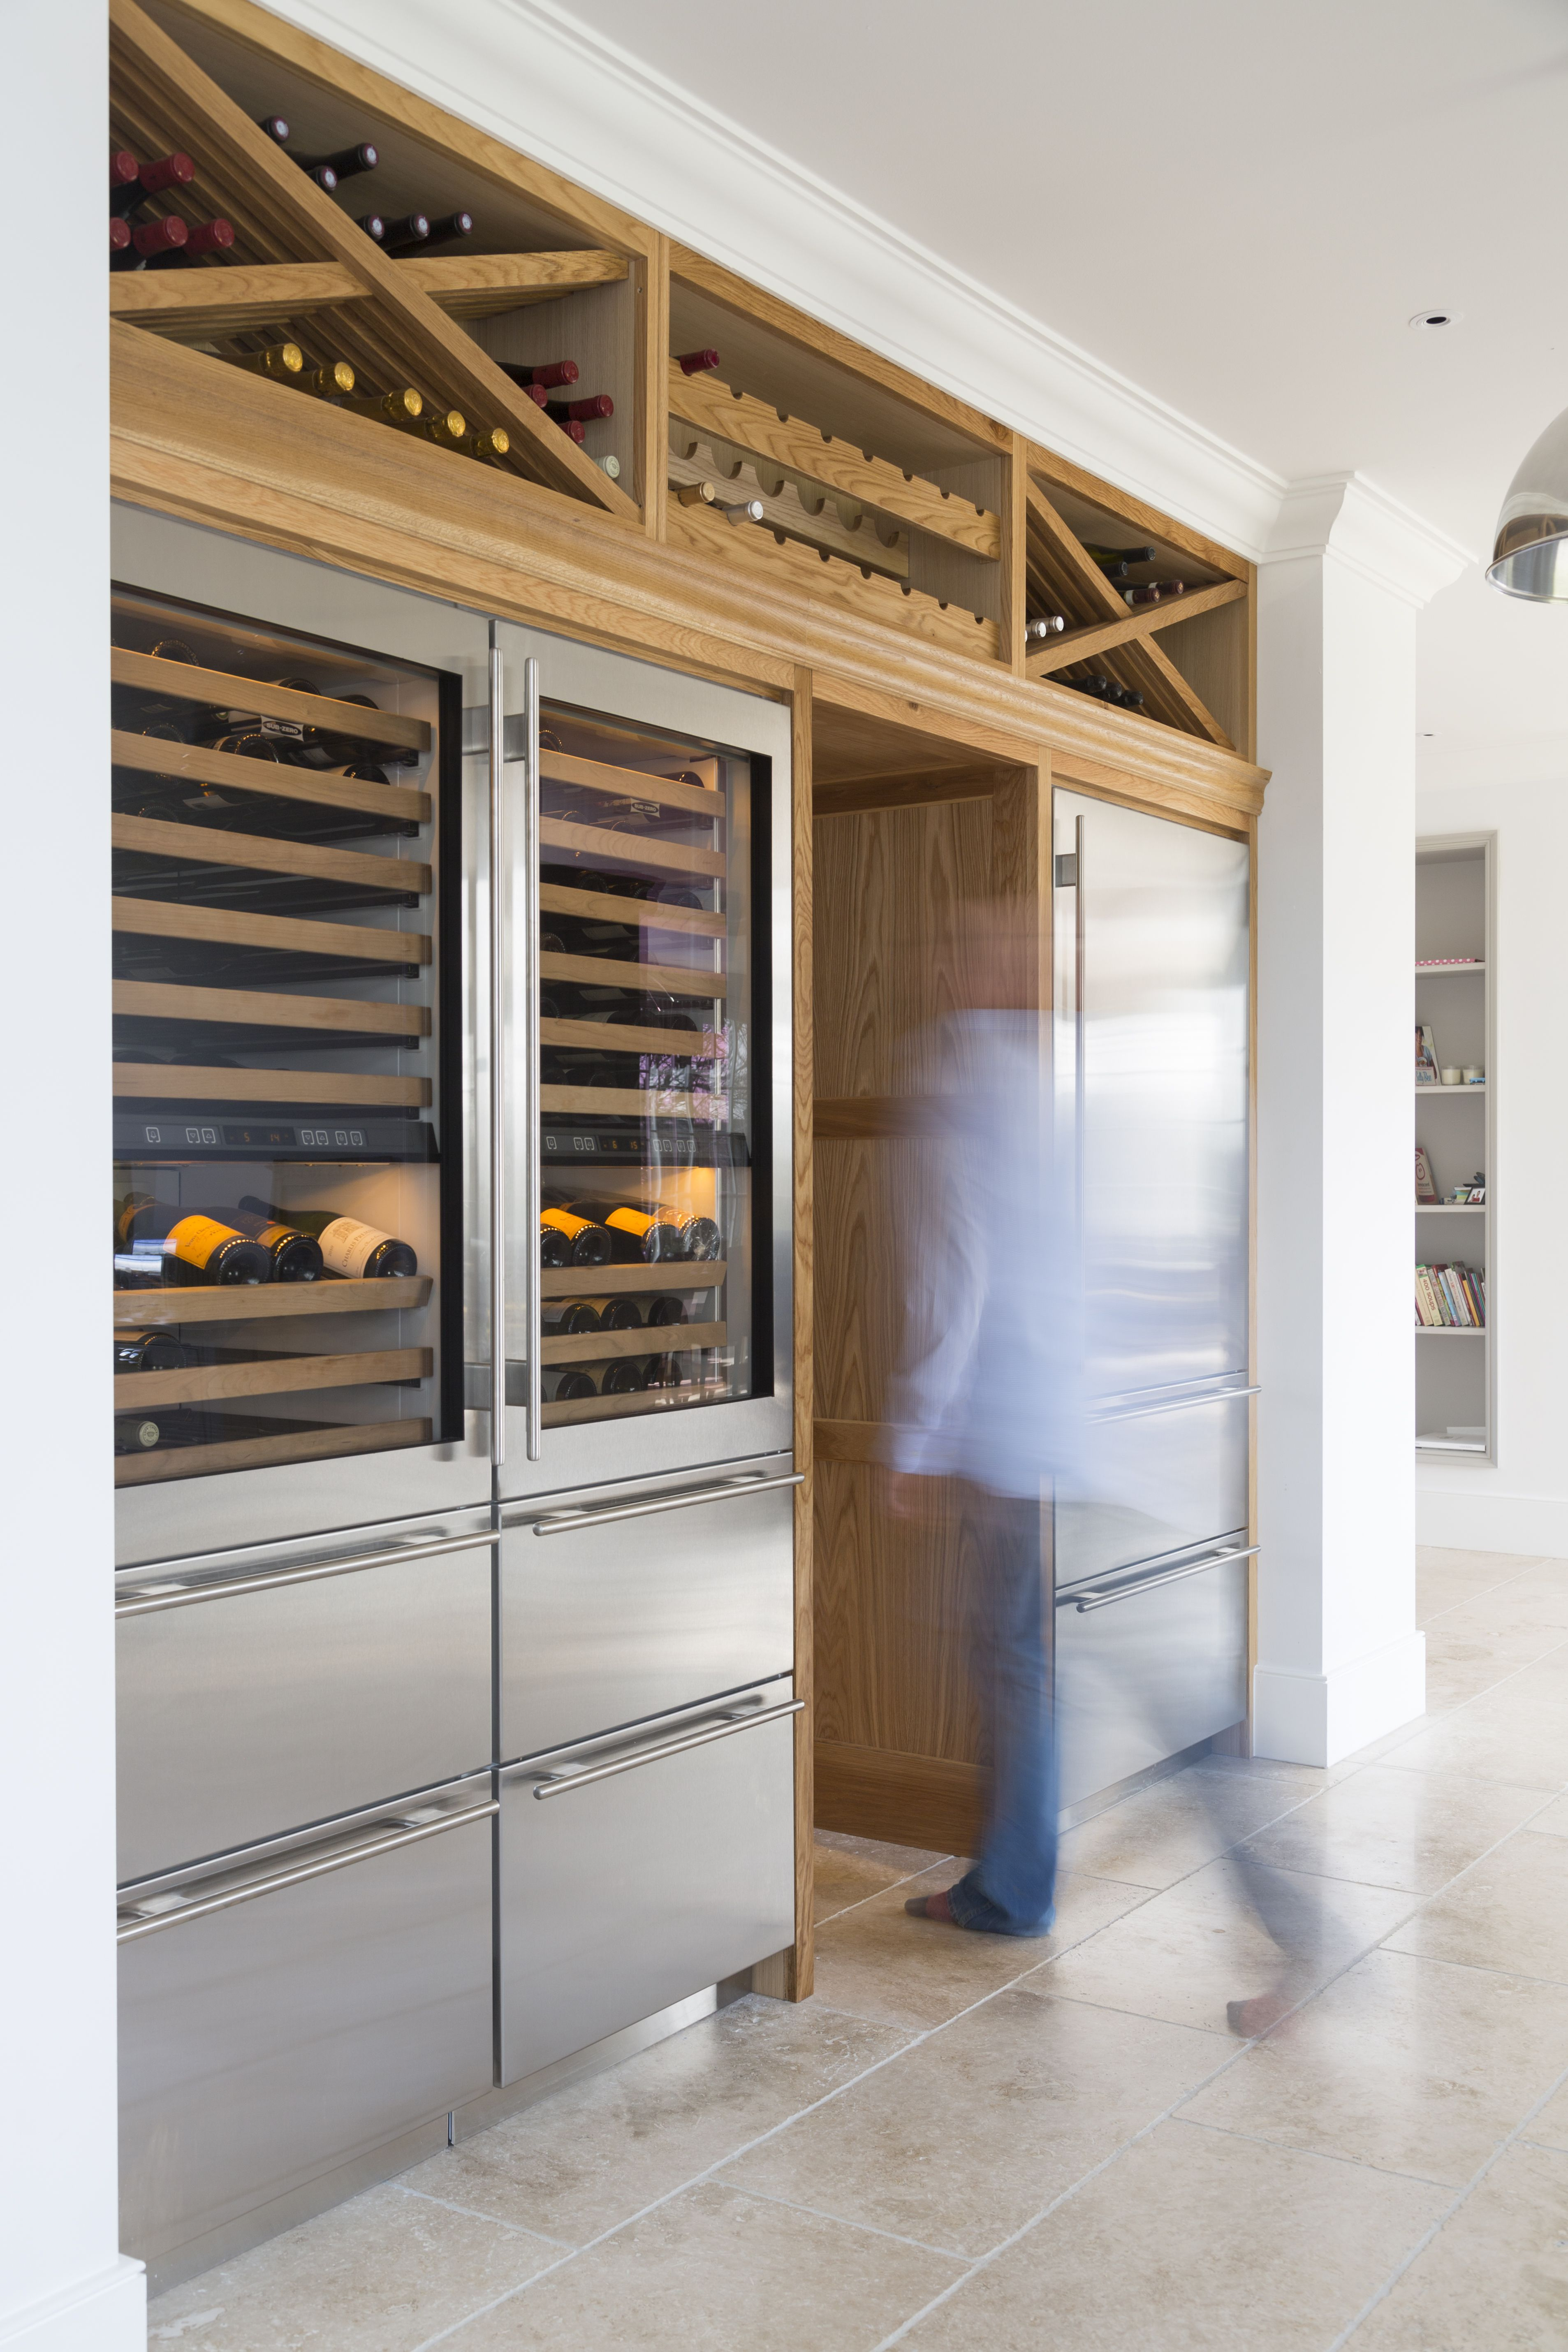 freezer inspire your to boathouse kitchens zero next project drawers sub time